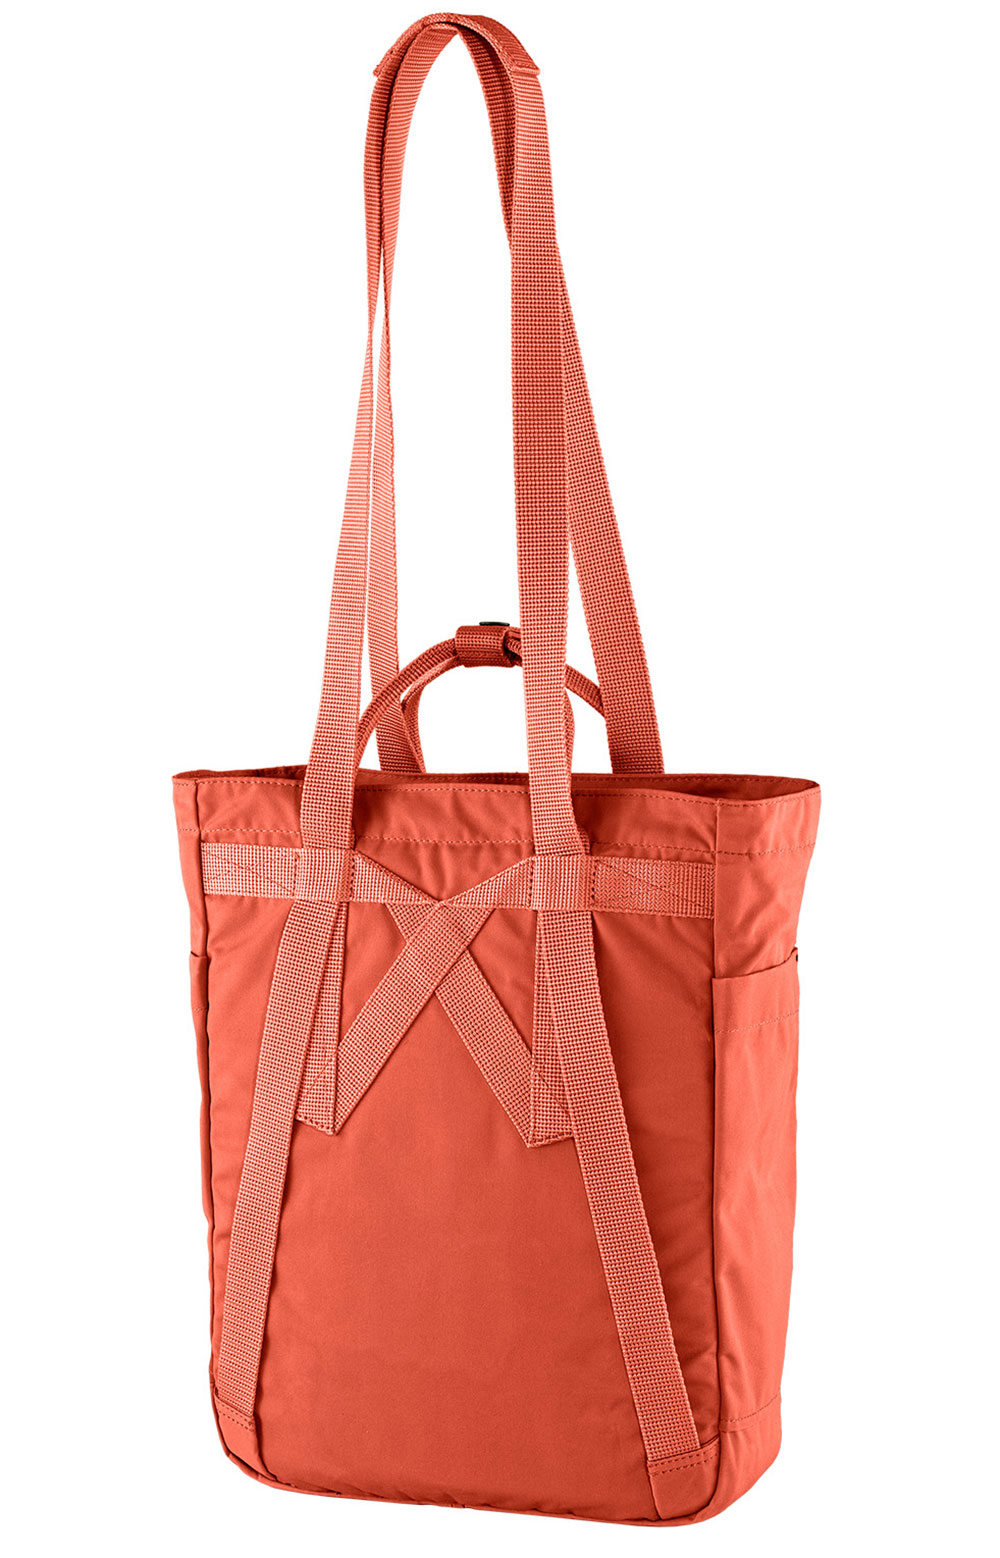 Kanken Tote Bag - Rowan Red 4